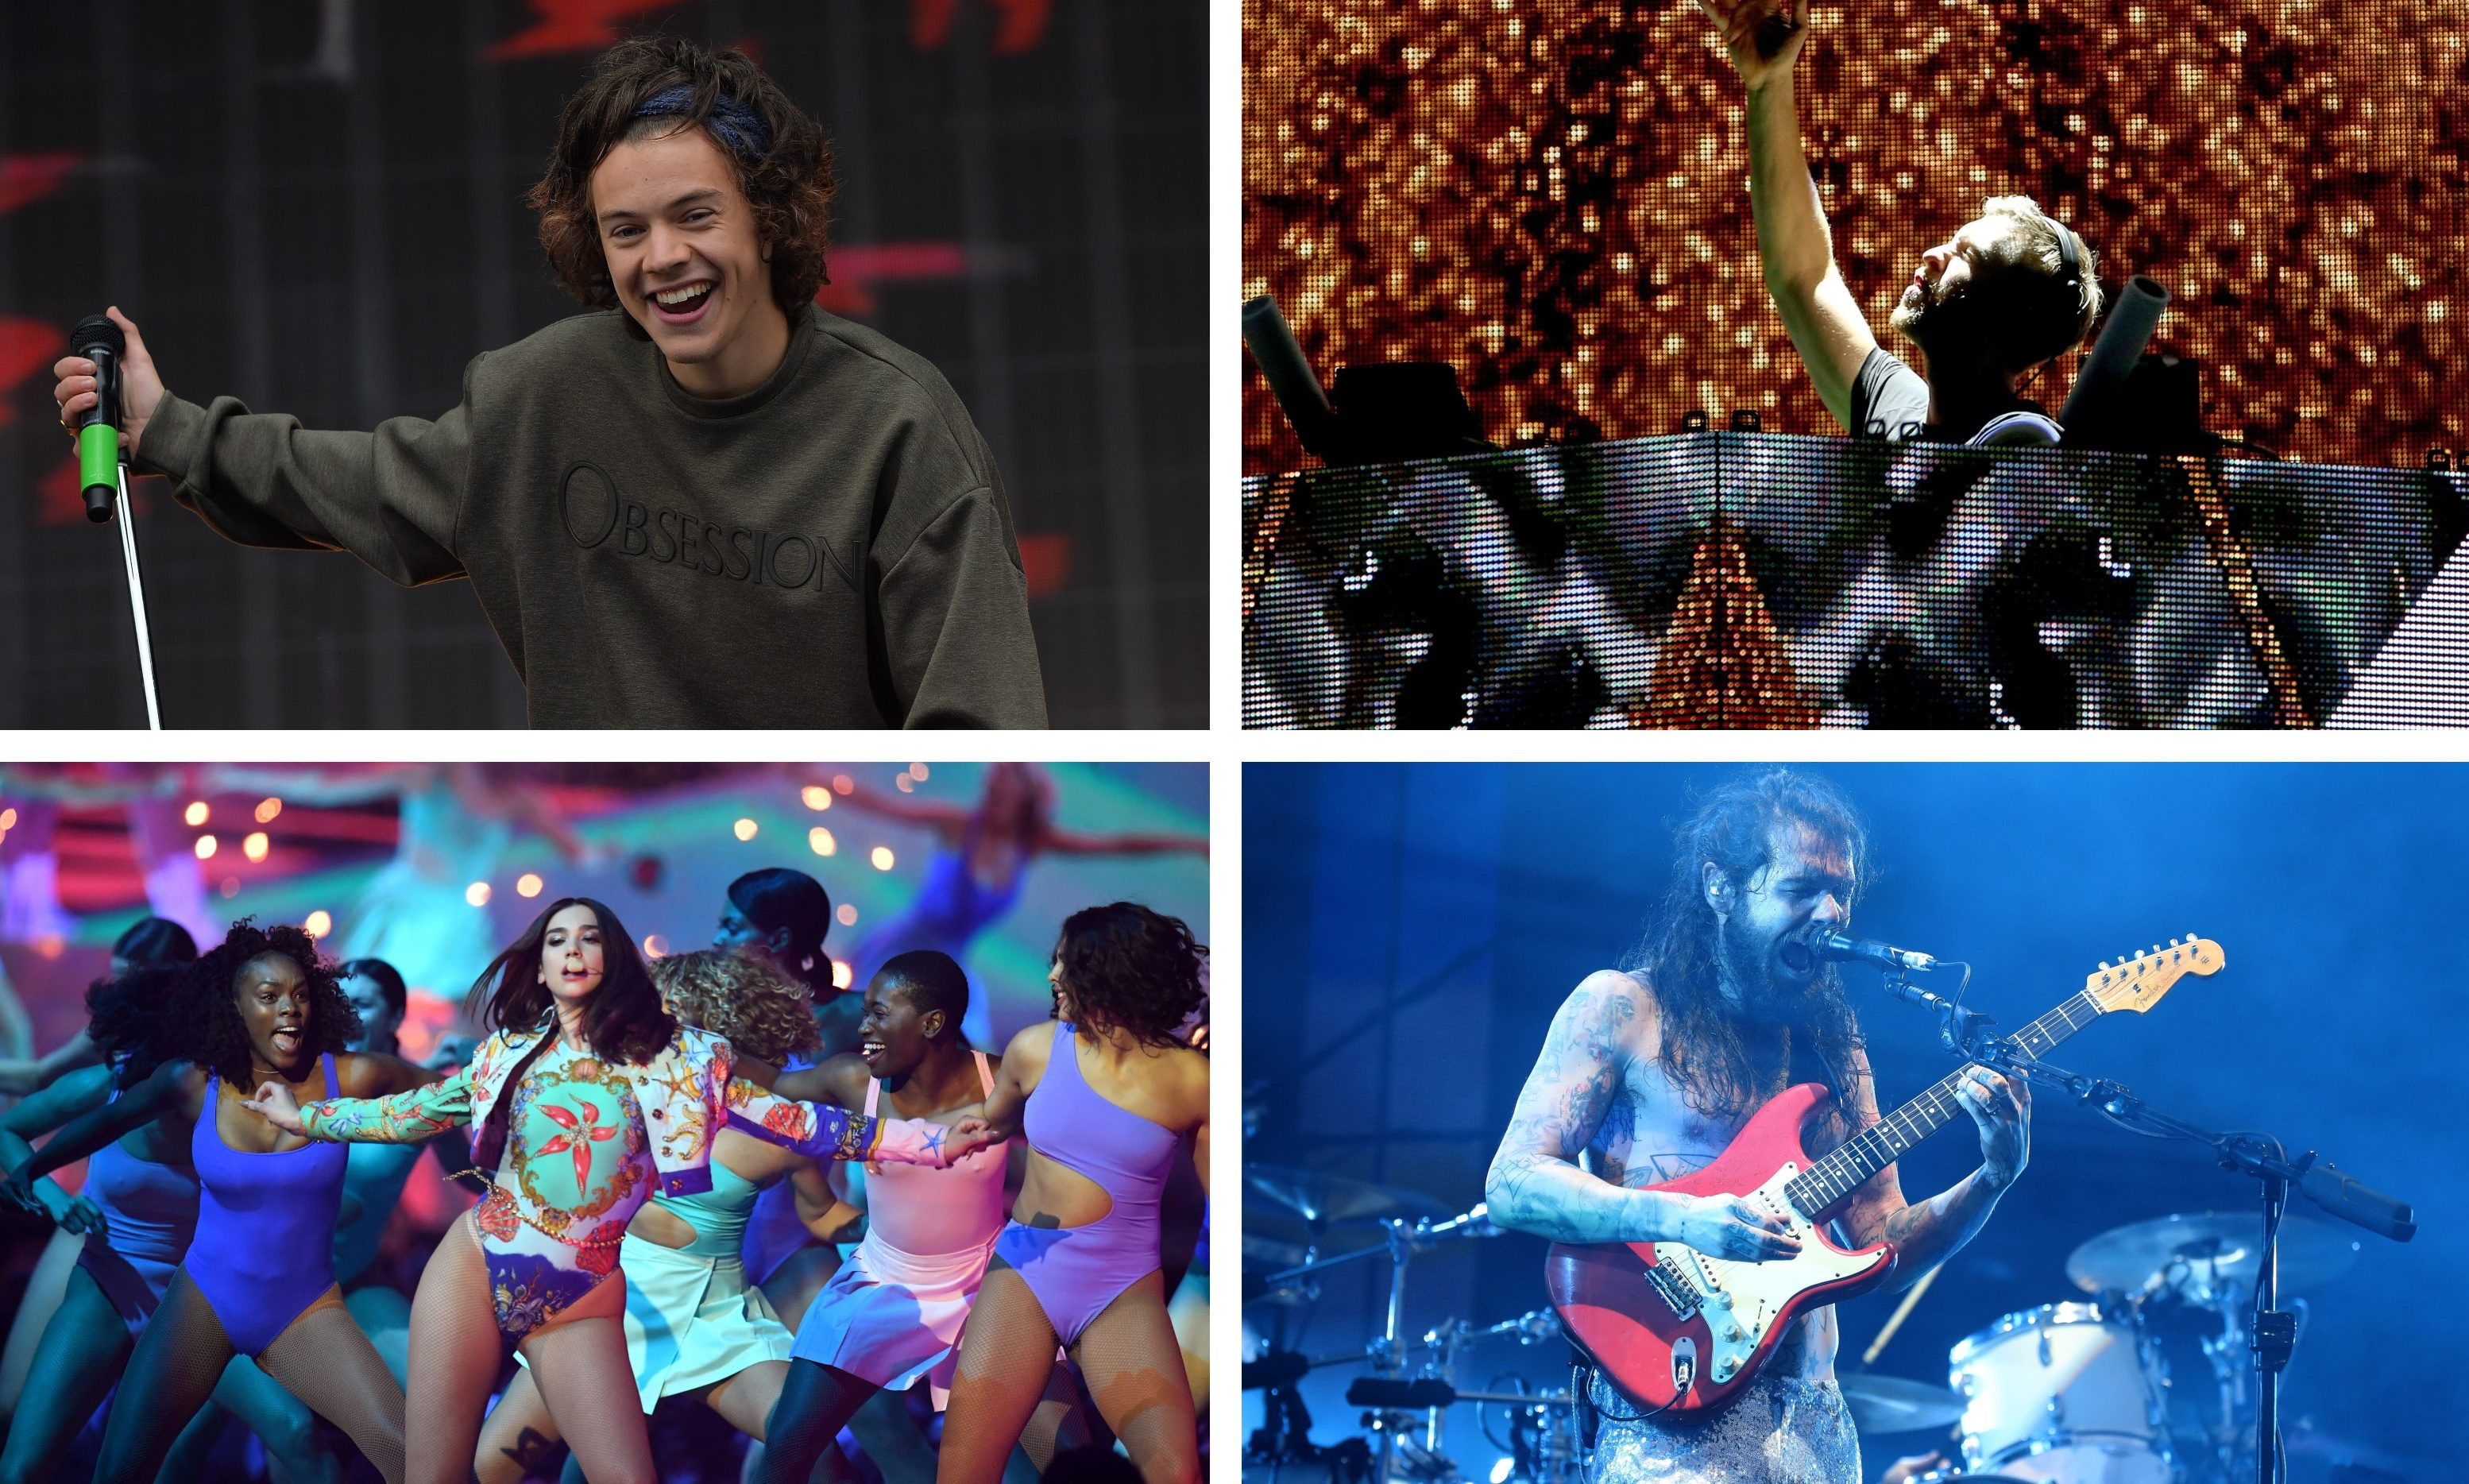 Harry Styles, Dua Lipa, Calvin Harris and Biffy Clyro were among the acts scheduled for the Big Weekend in Dundee.